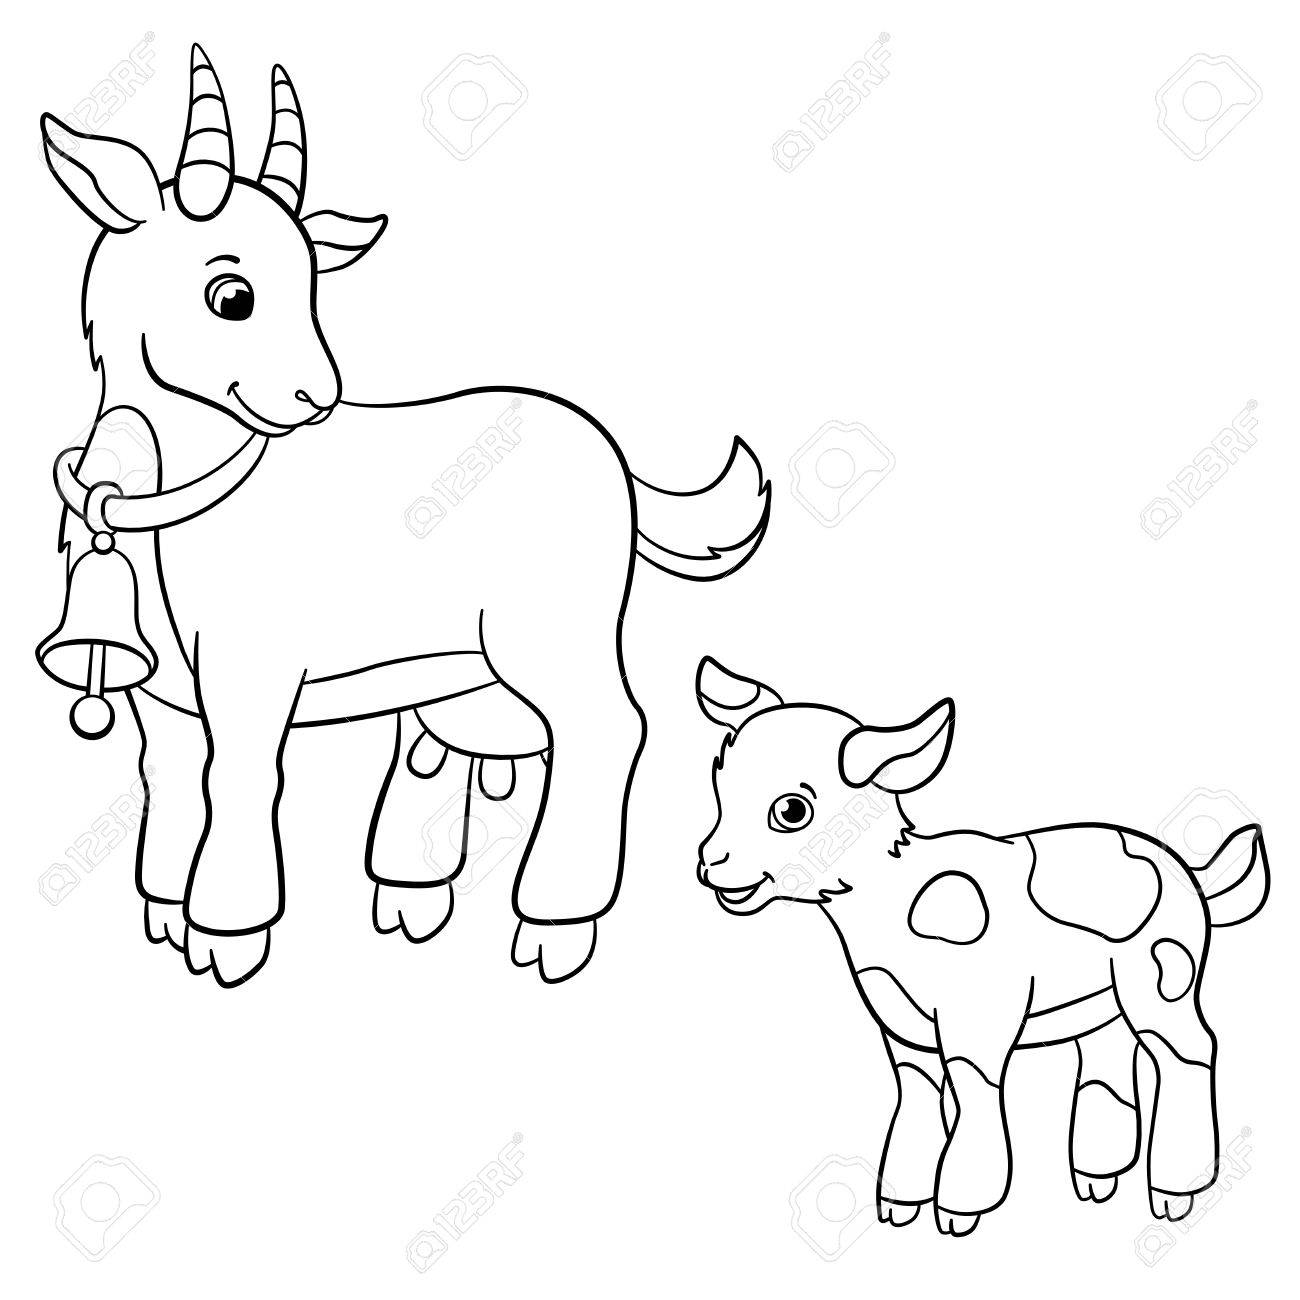 Coloring Pages. Farm Animals. Cute Mother Goat Looks At The Little ...